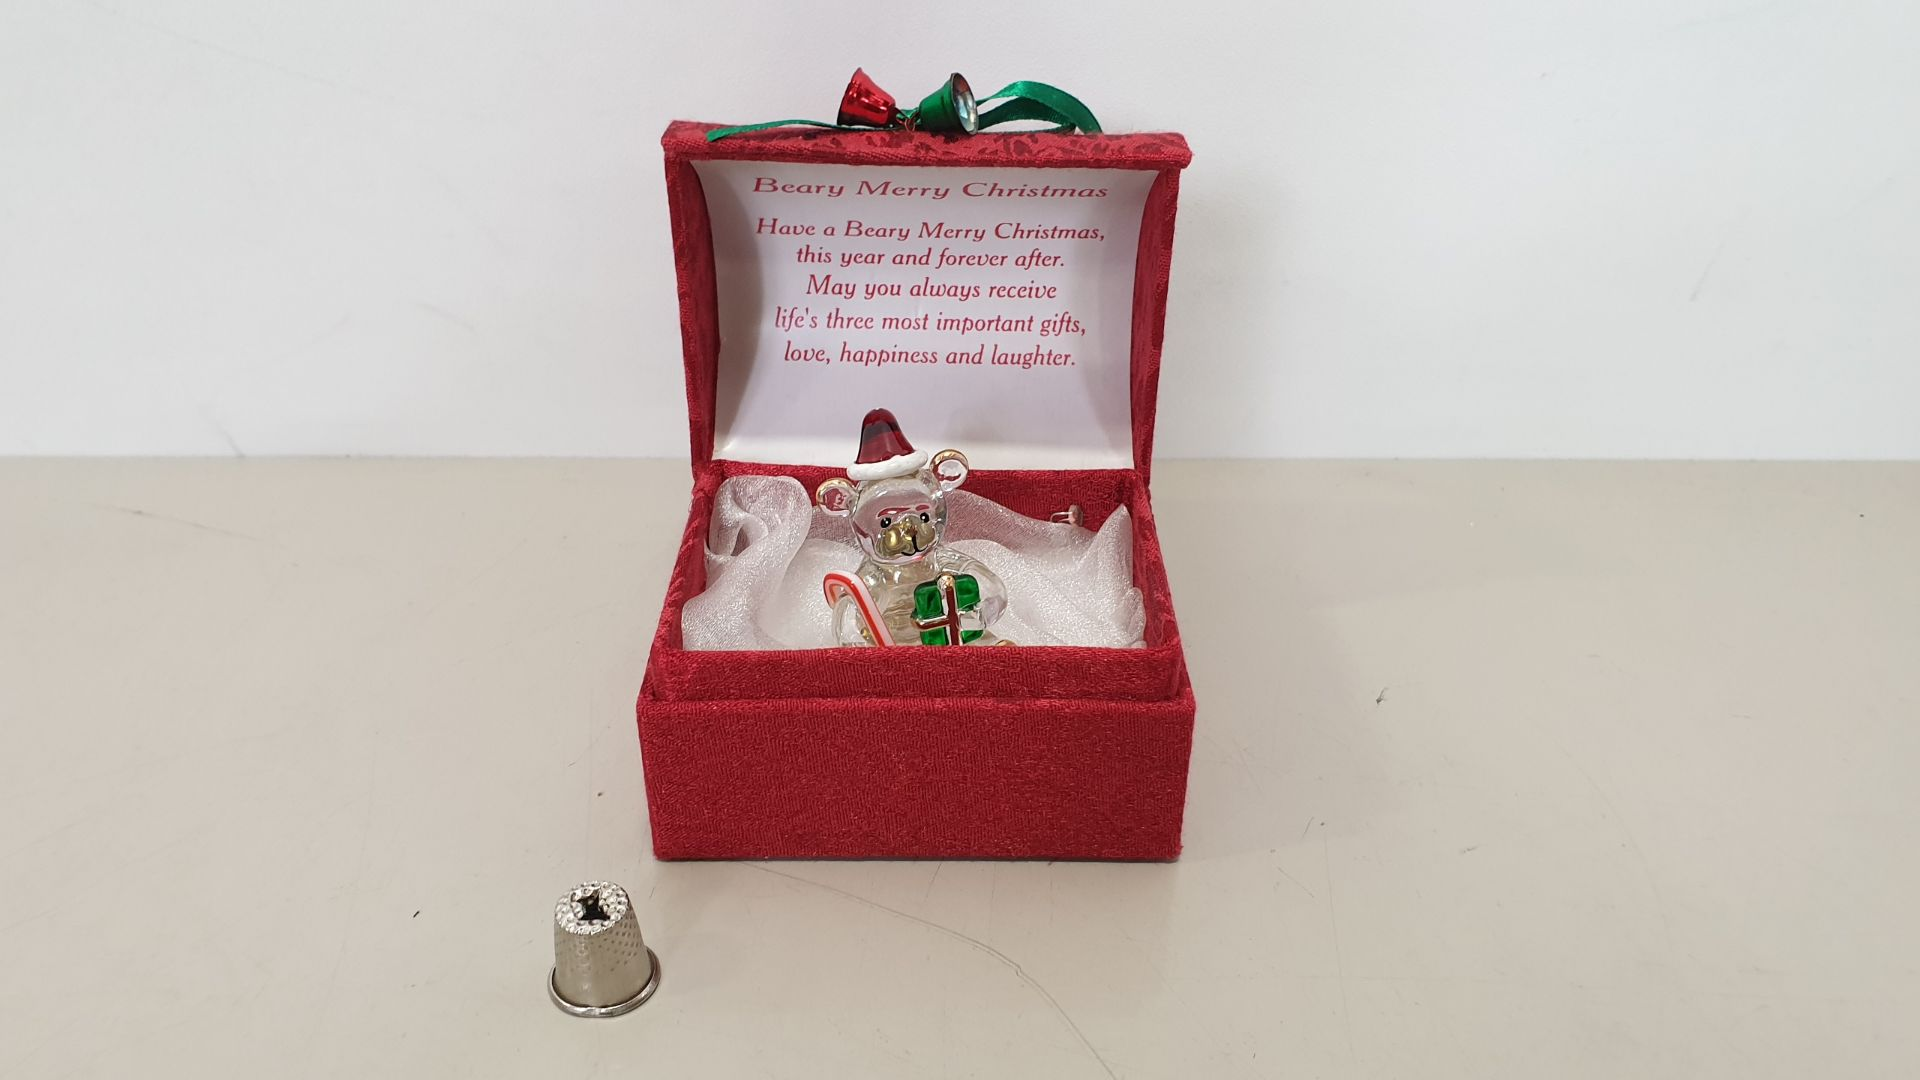 Lot 600 - 144 X BRAND NEW MAYFLOWER COLLECTABLES BEARY MERRY CHRISTMAS GLASS BEAR BOX - IN 4 BOXES